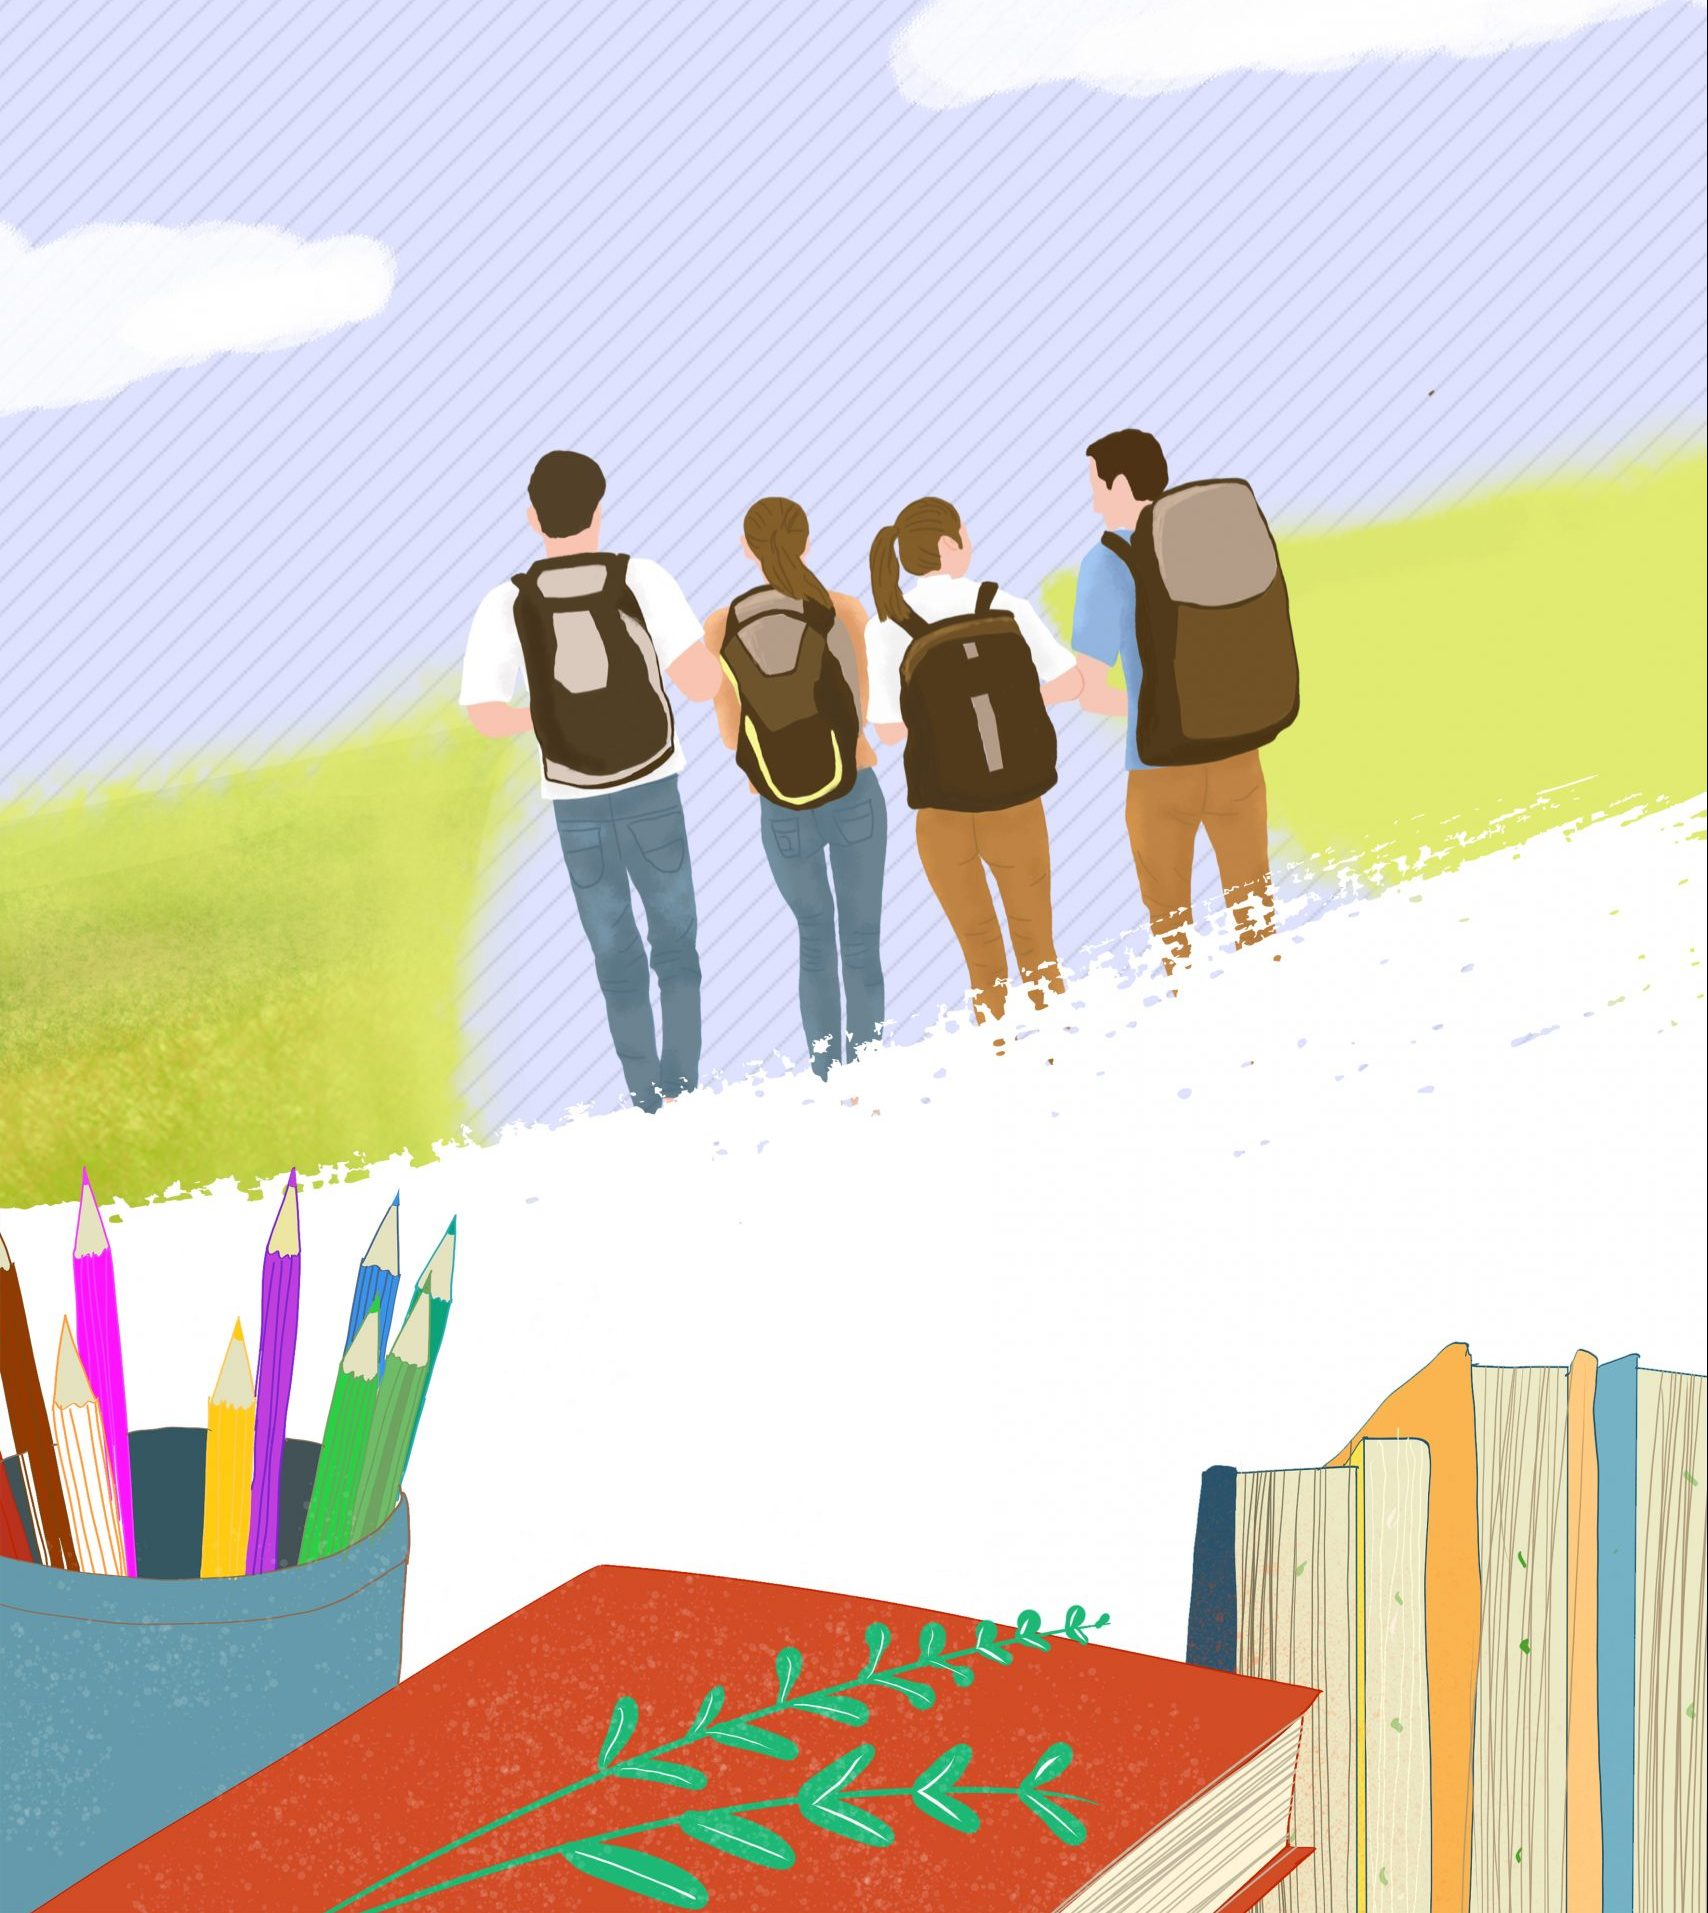 four teens in backpacks with books in foreground